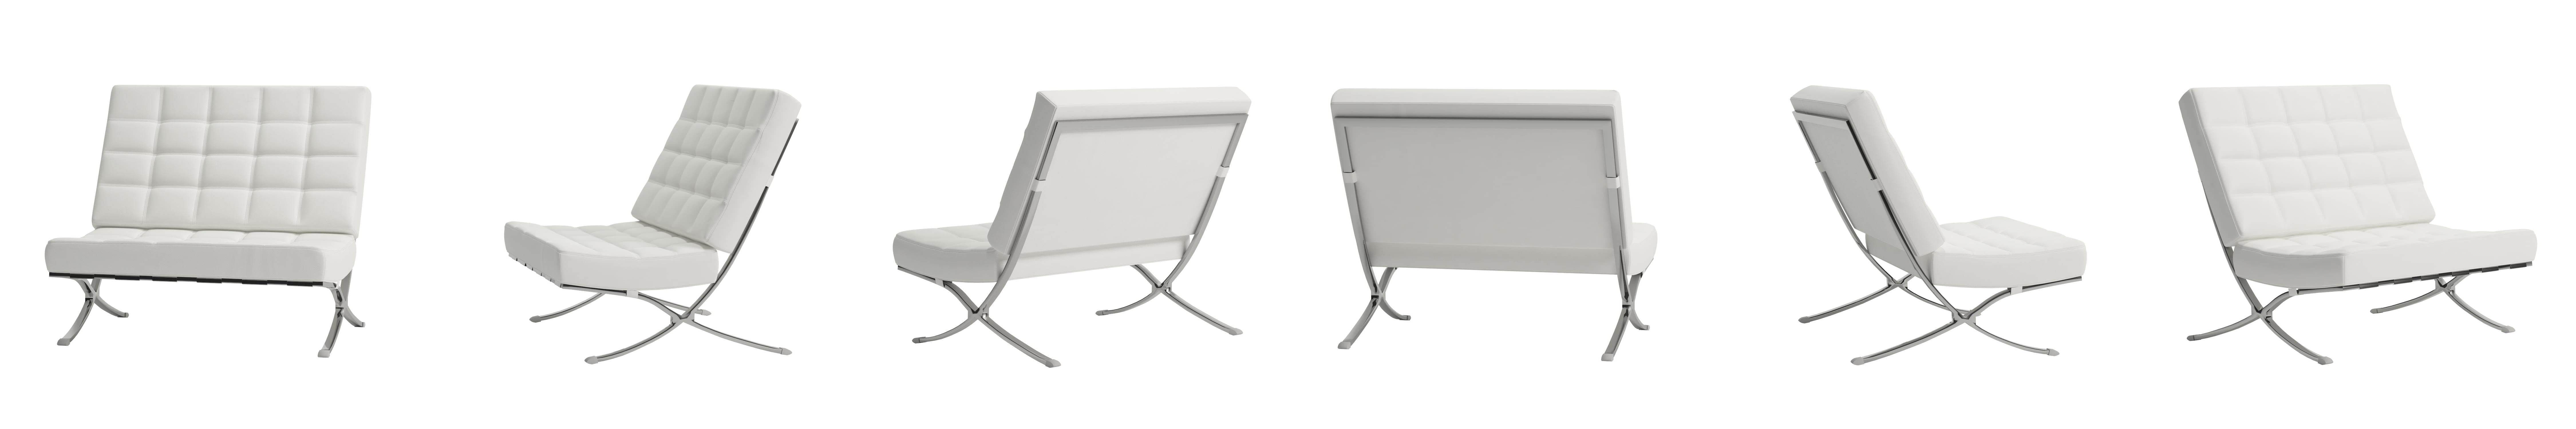 People sitting in waffle chair - Amazon Com Coaster Home Furnishings Accent Chair White White Kitchen Dining